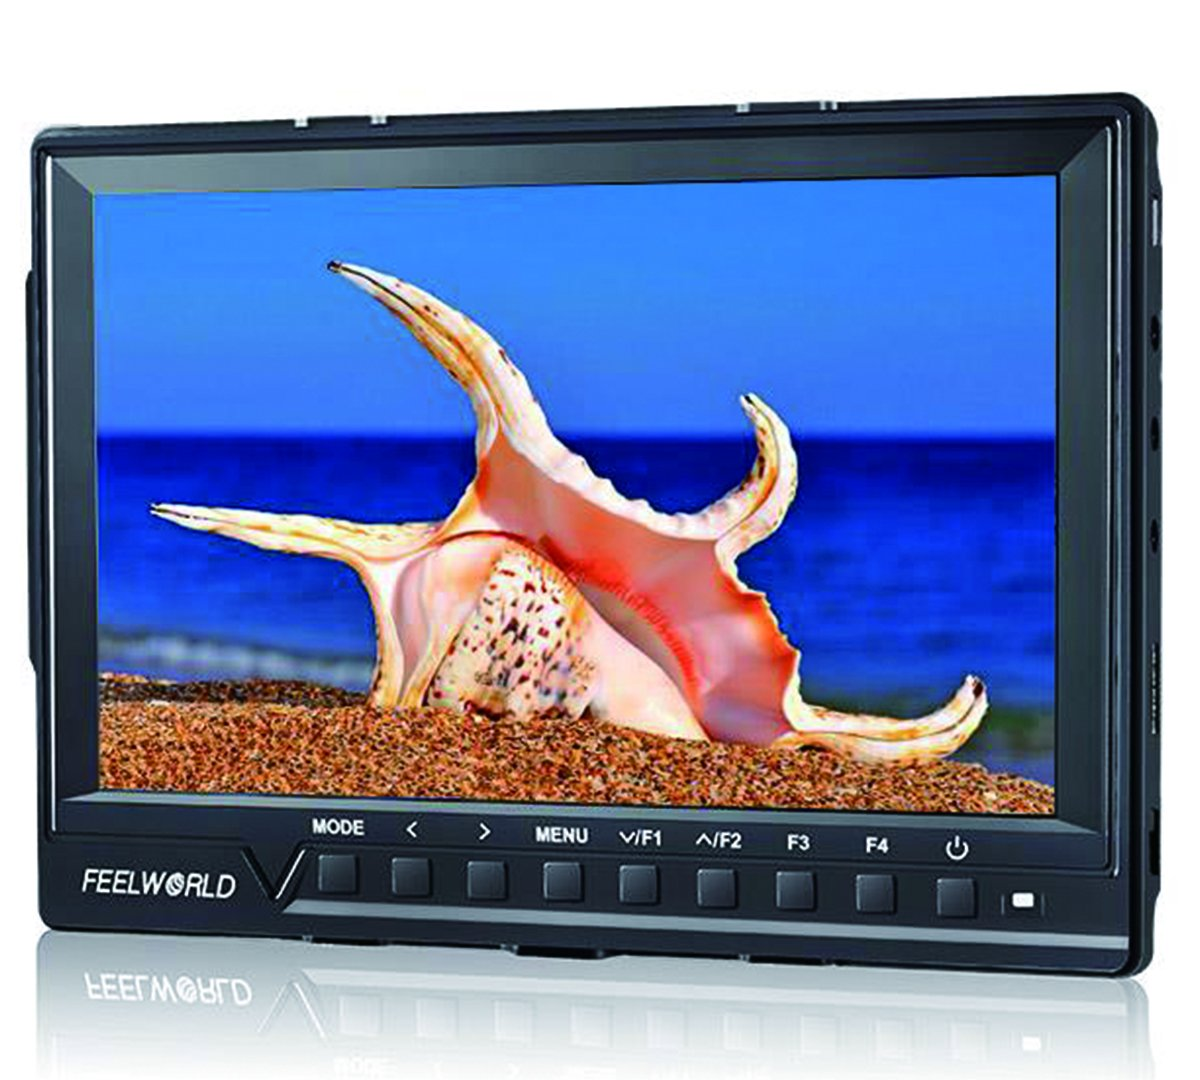 Feelworld FW760 Ultra HD 1920x1200 IPS 1080P HDMI Camera Audio Monitor Peaking for DSLR Cameras